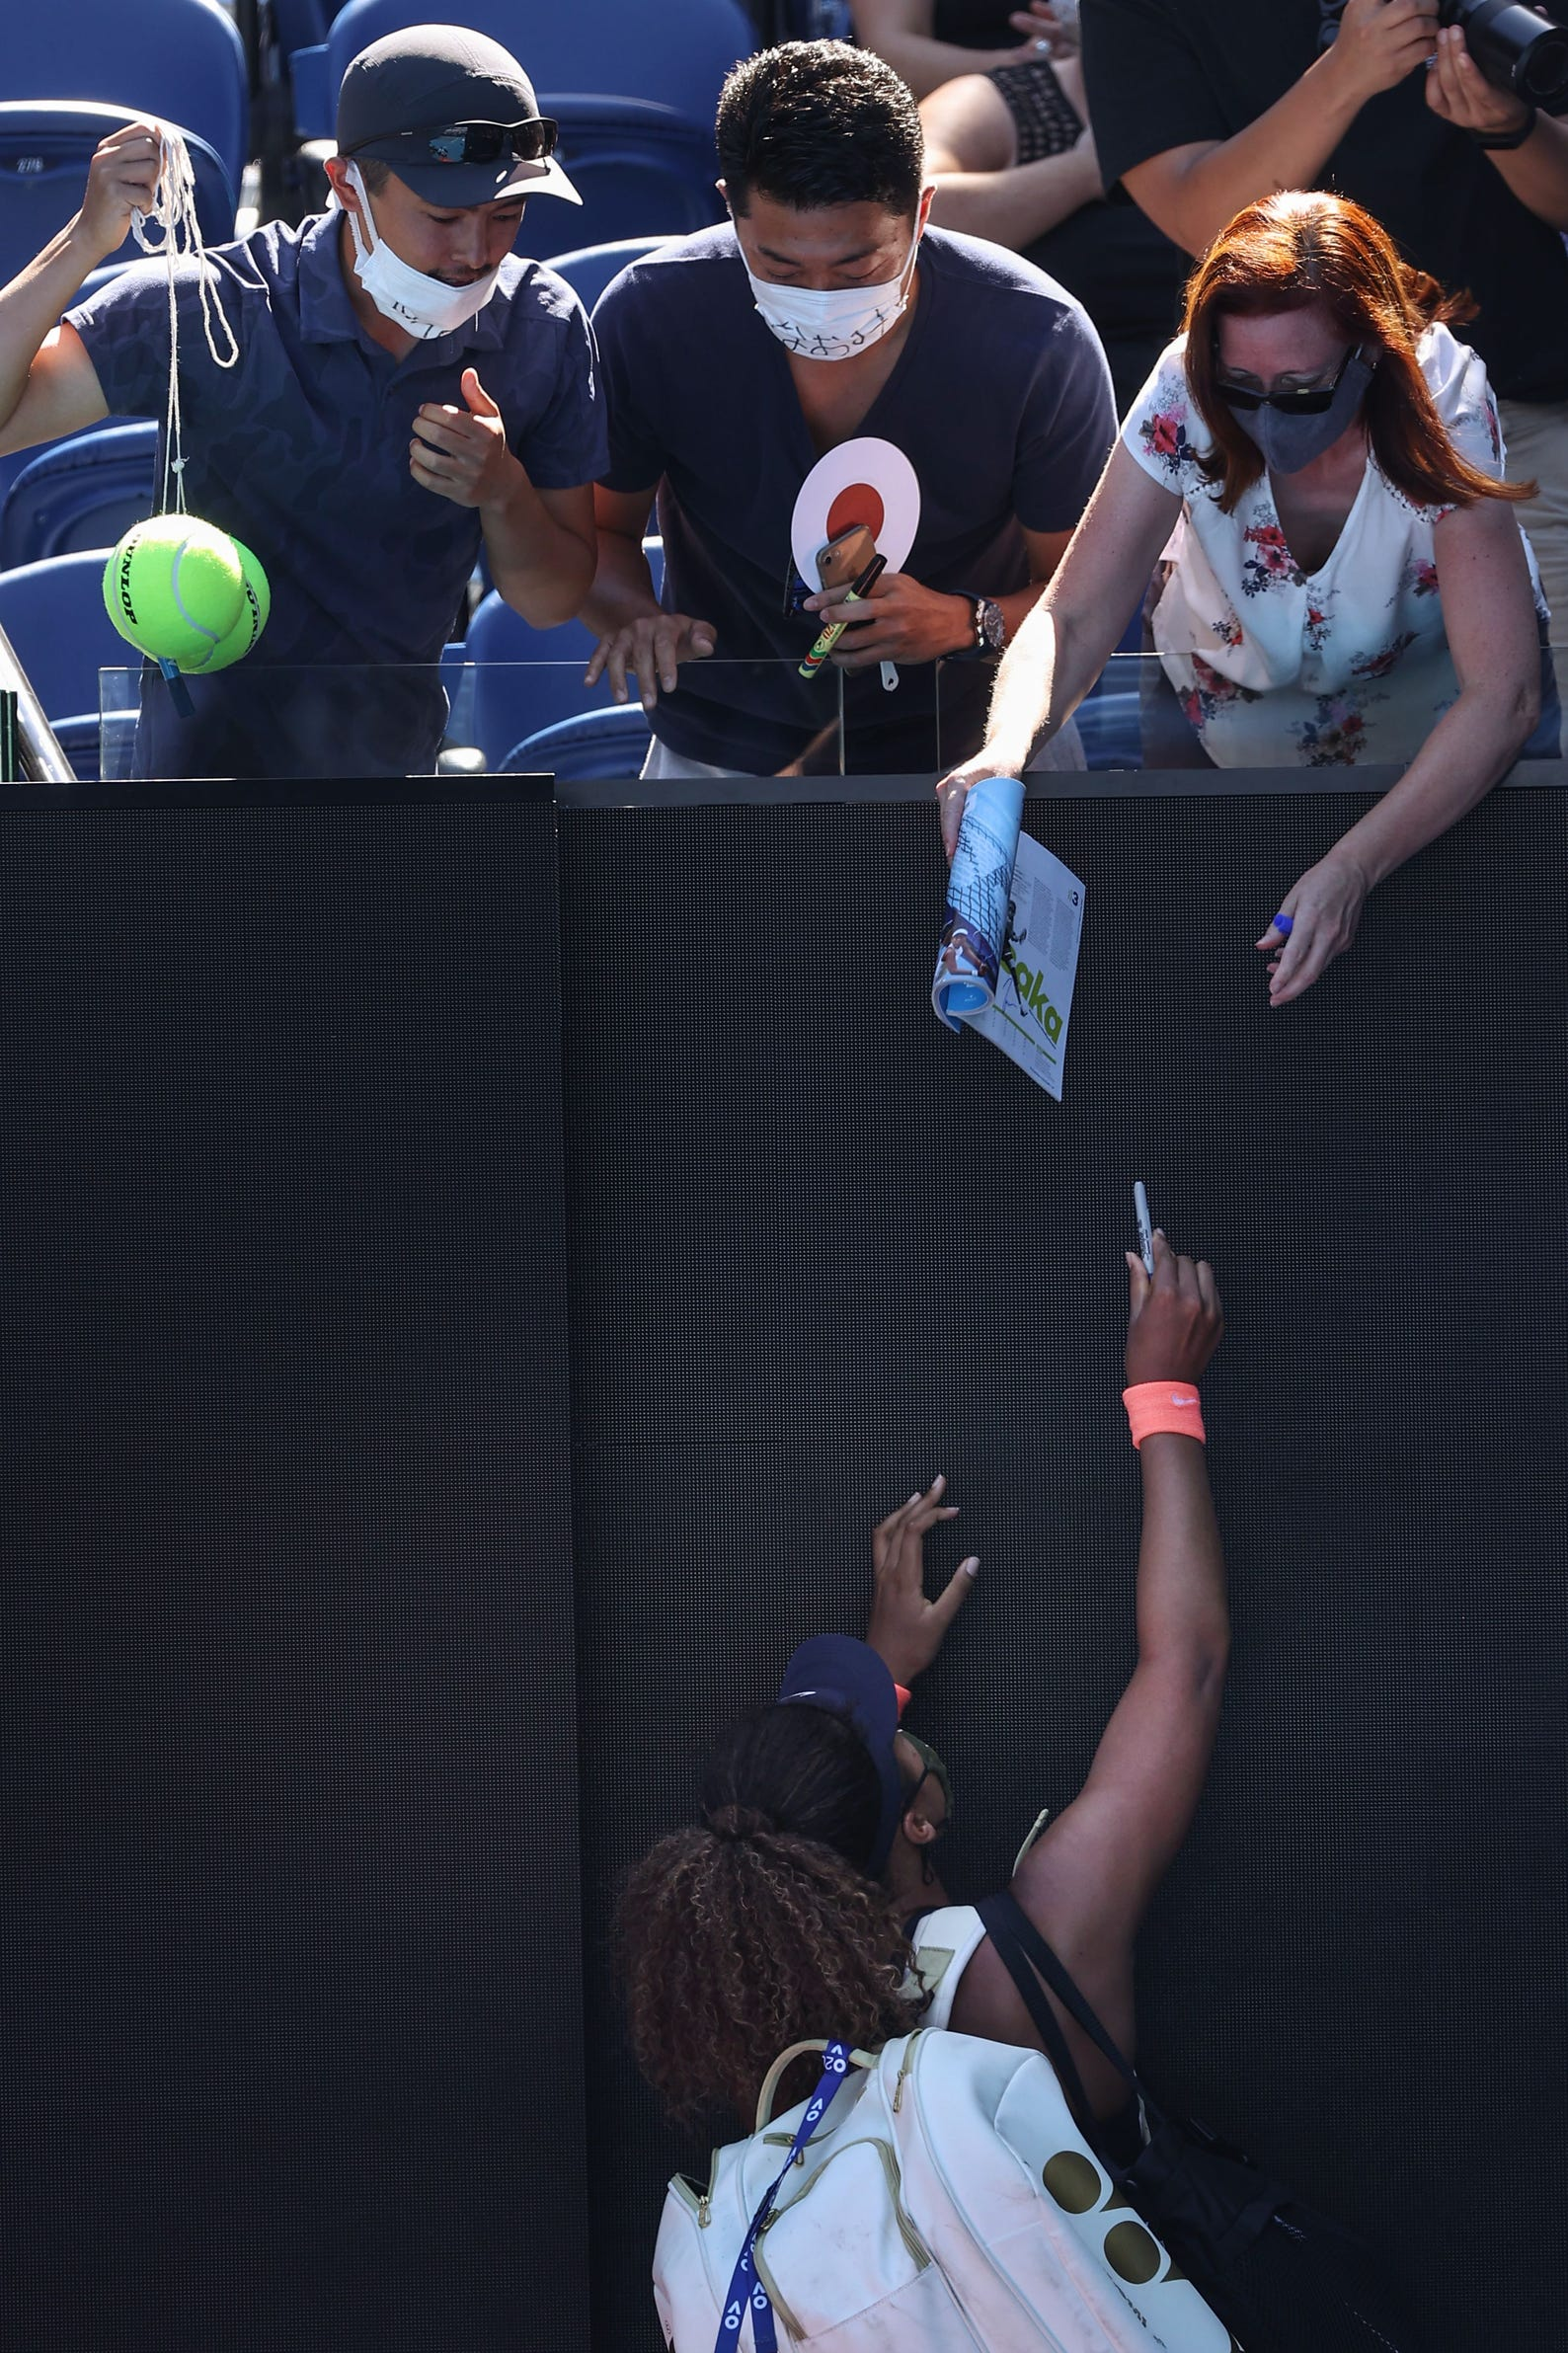 Japan's Naomi Osaka signs autographs for fans after beating Serena Williams of the US in their women's singles semi-final match on day eleven of the Australian Open tennis tournament in Melbourne on February 18, 2021.